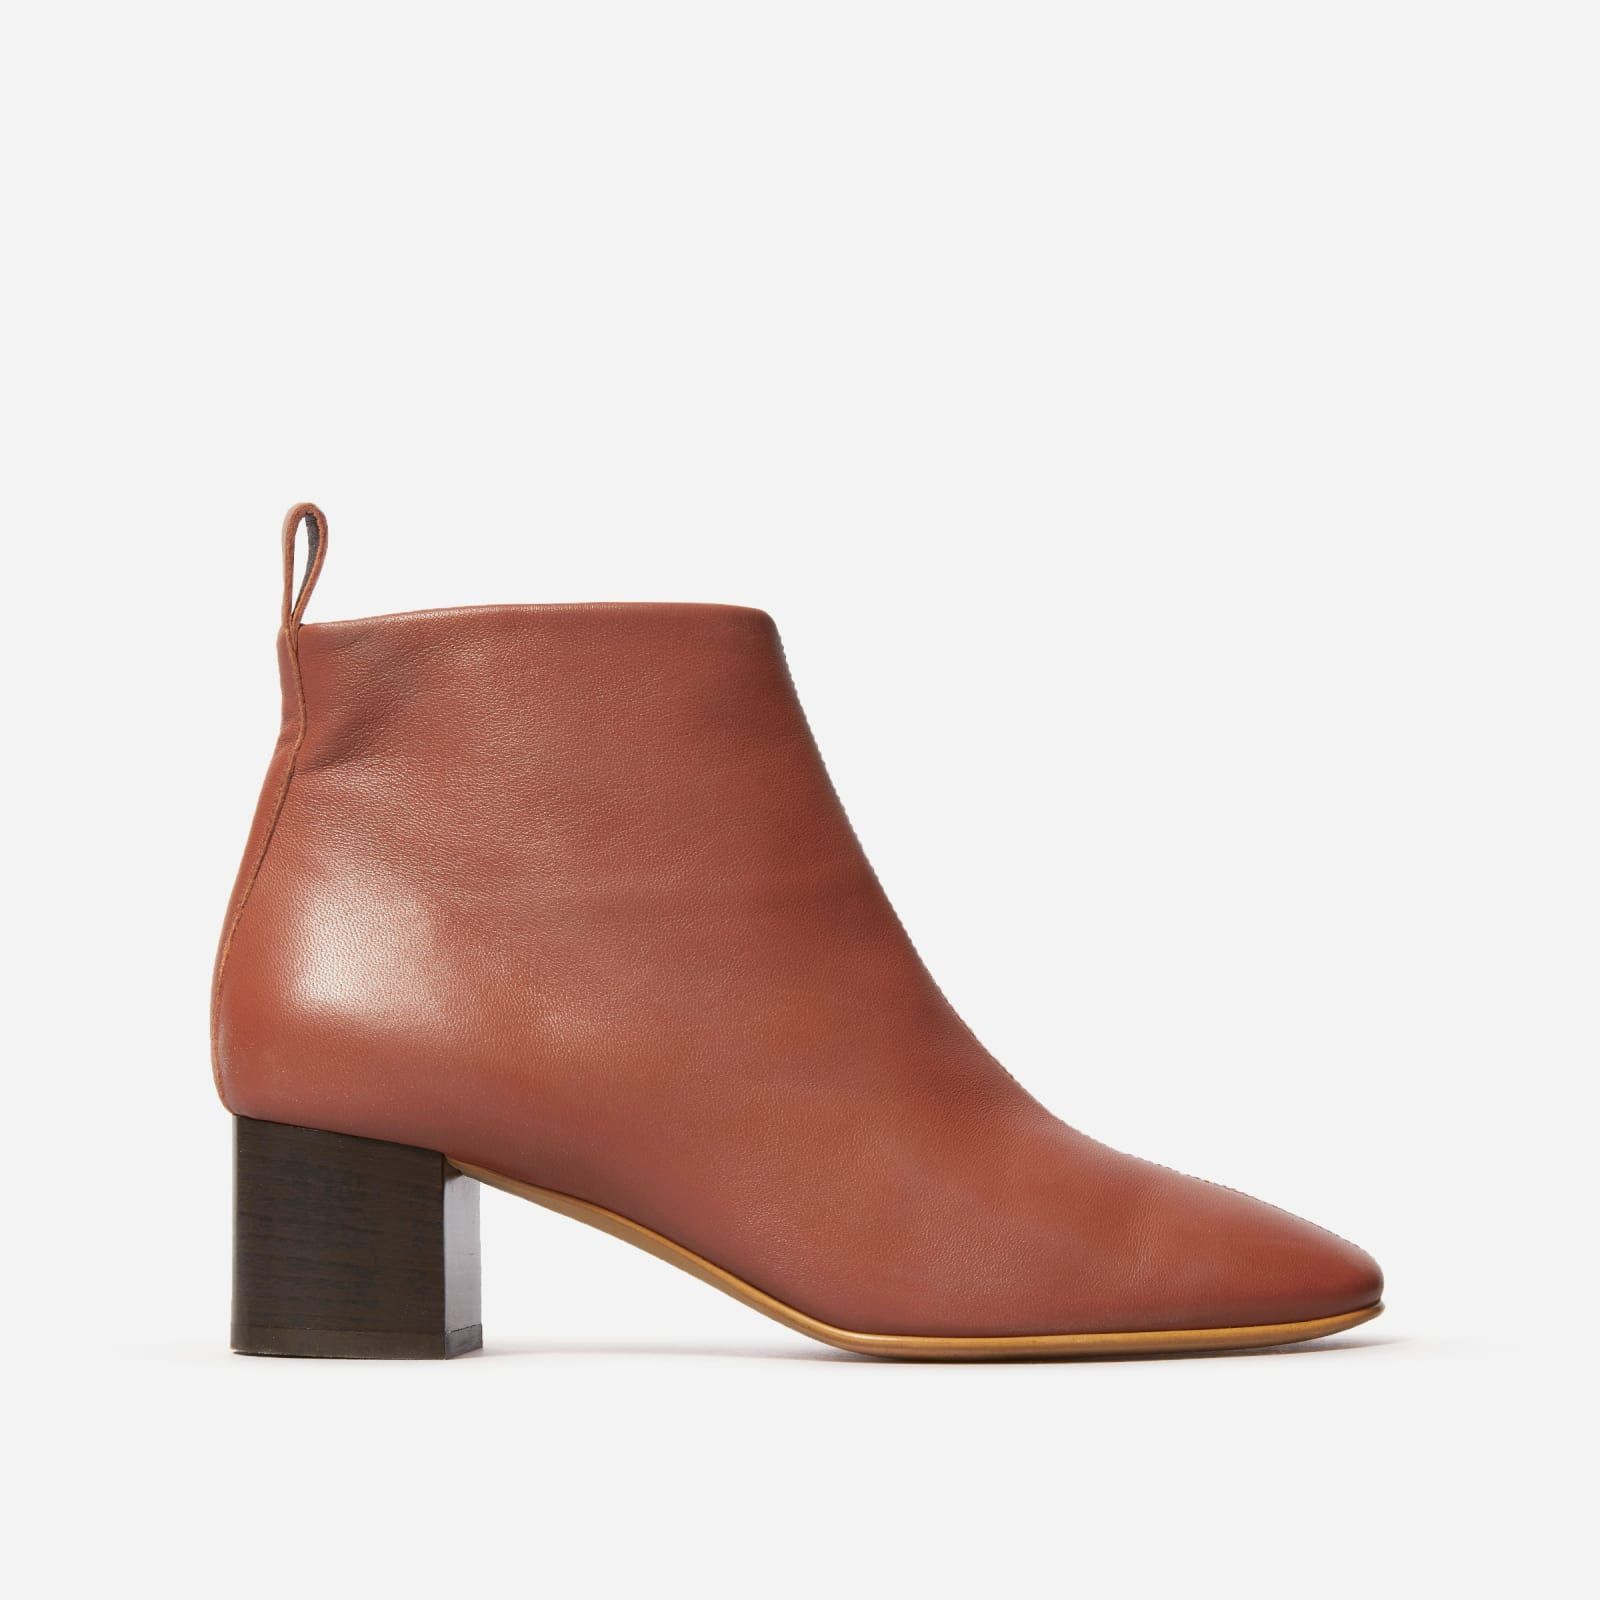 chelsea boot by everlane in brick, size 5